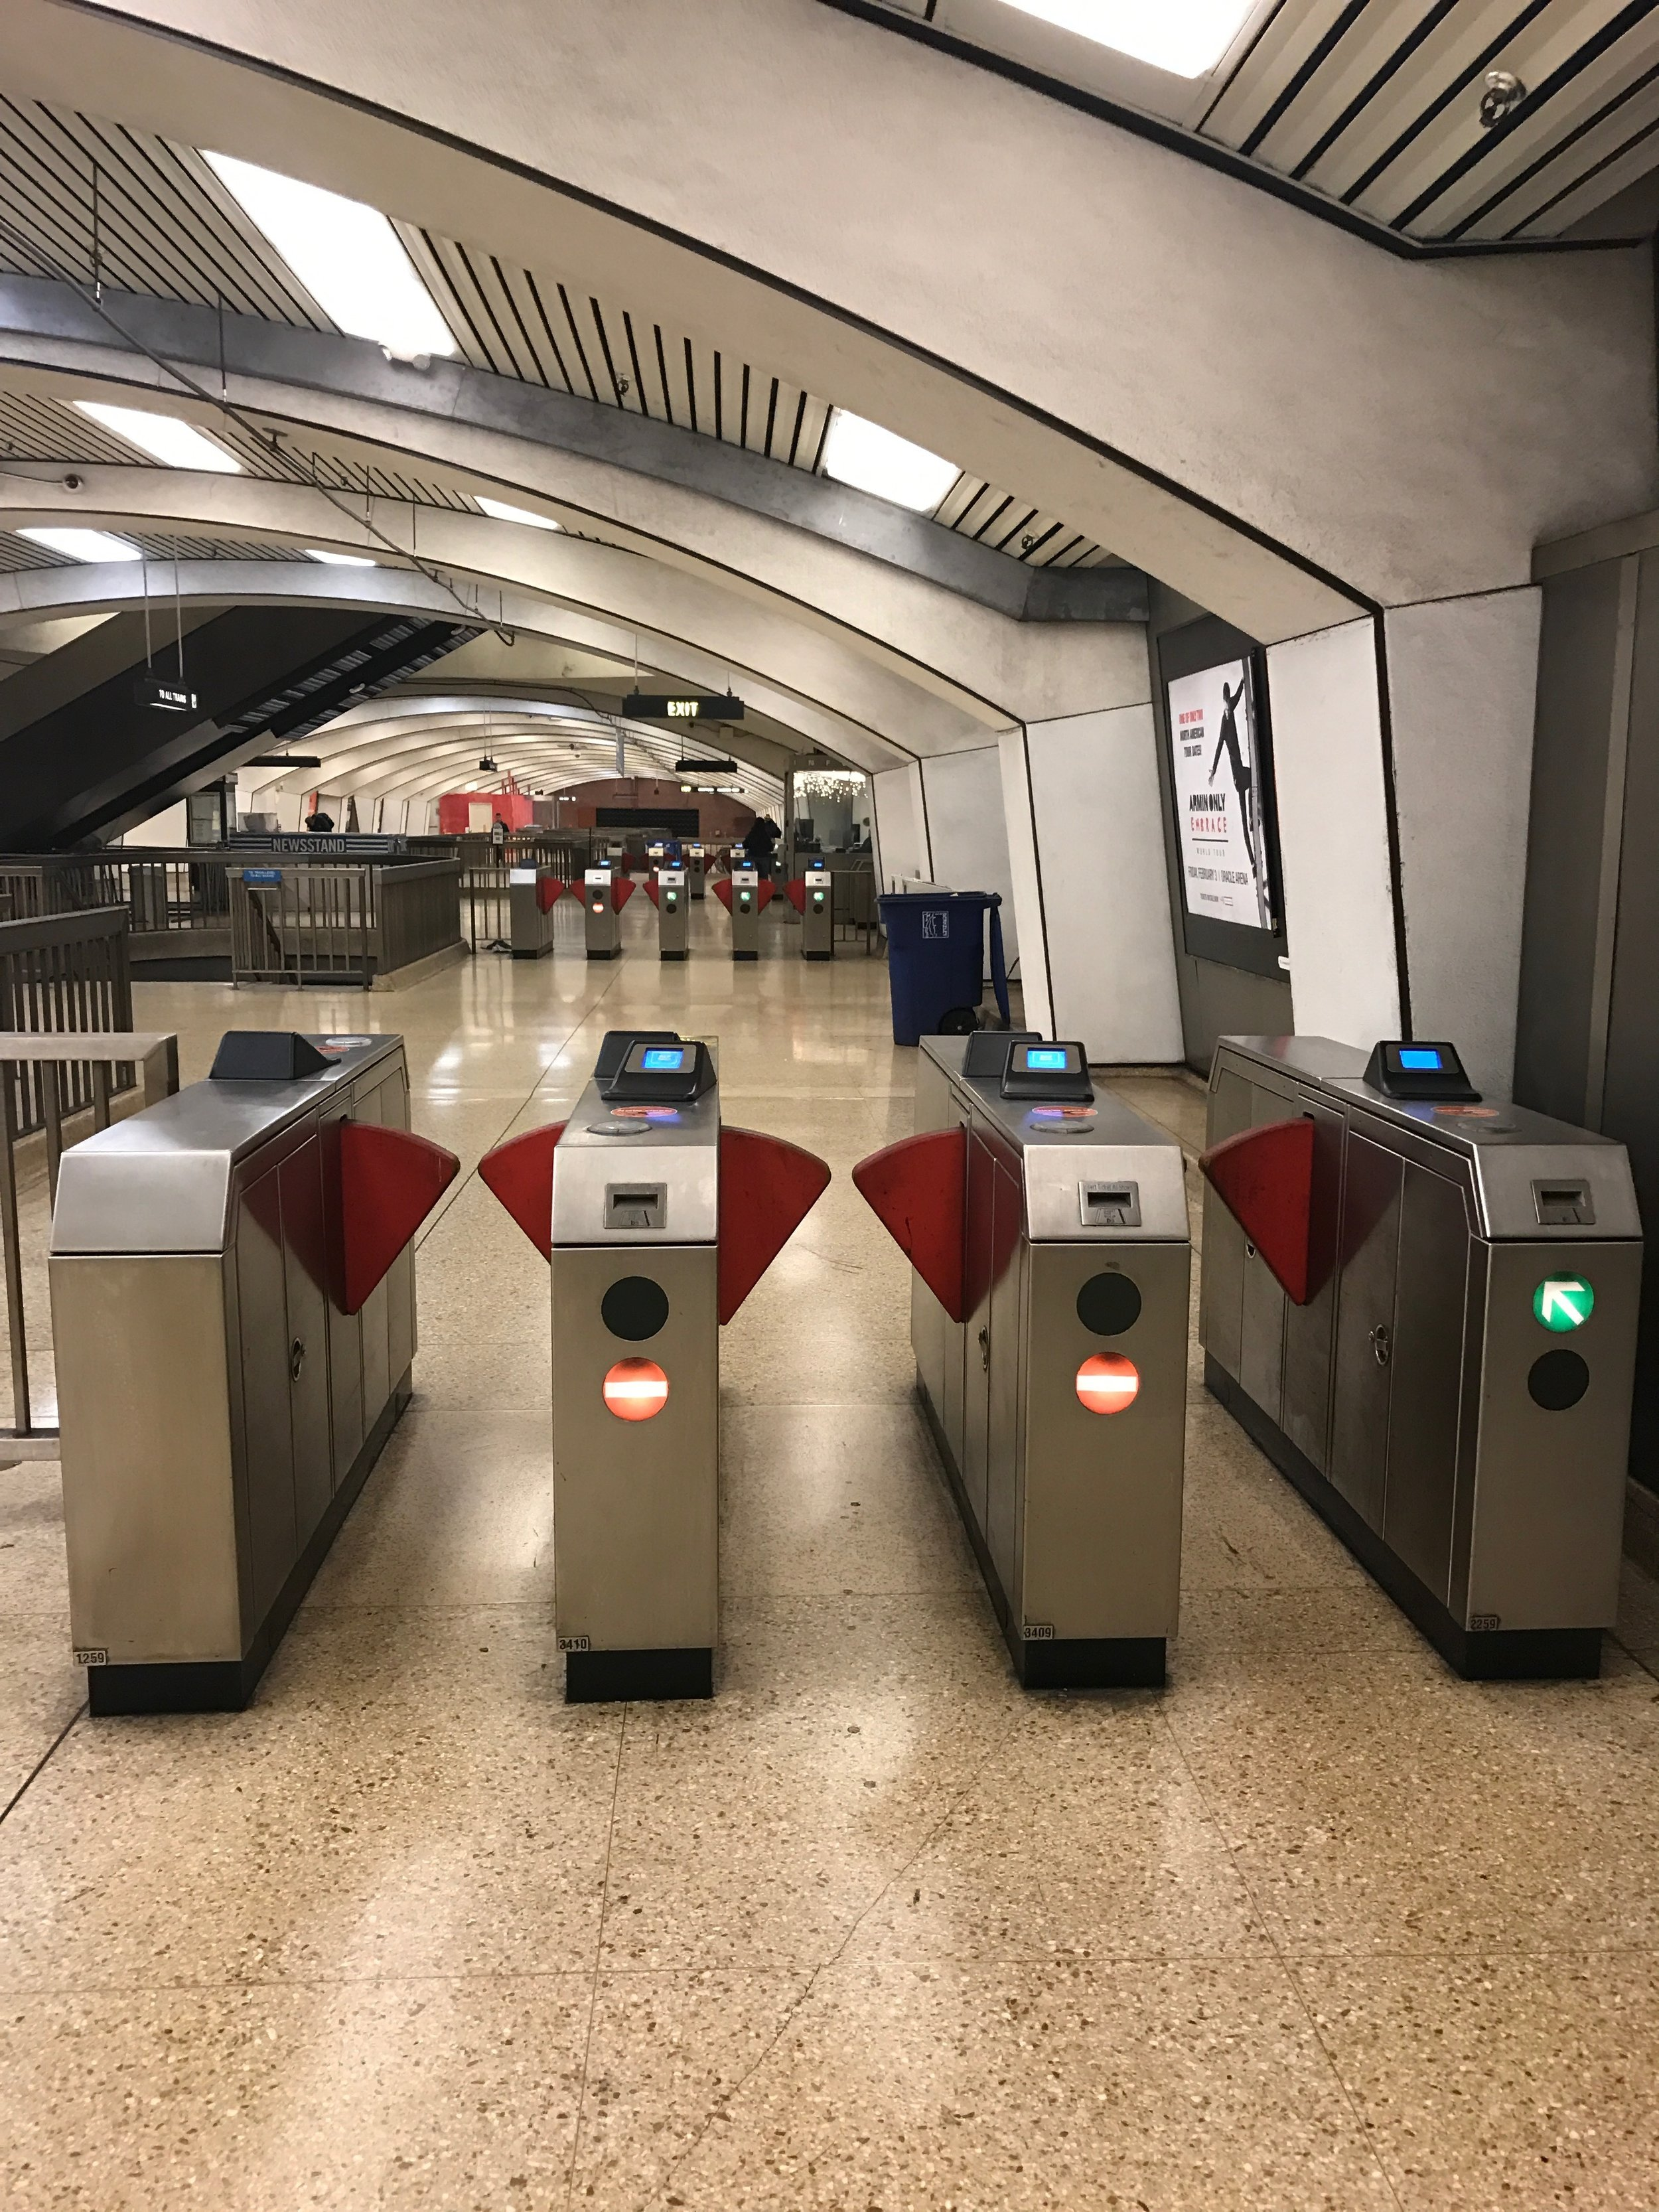 Turnstiles - Most of them Out of Service